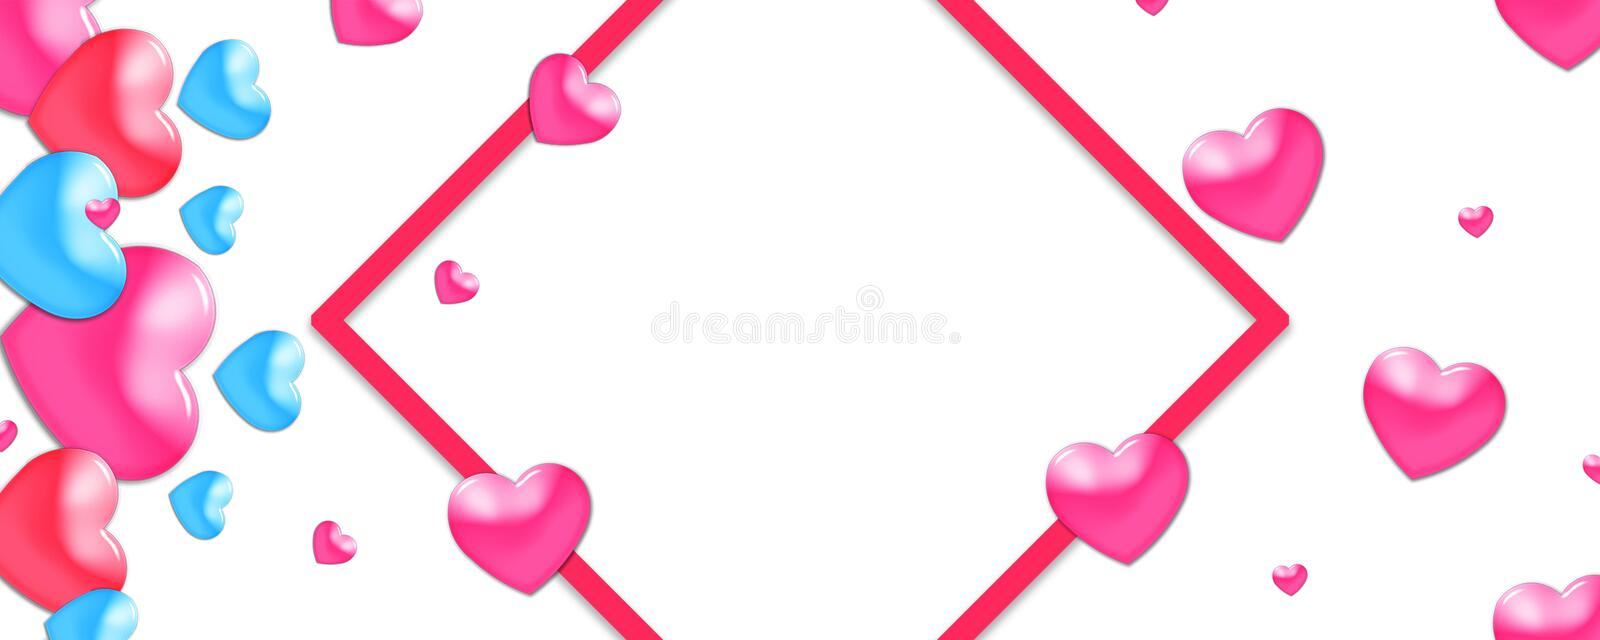 Valentines design, colorful hearts on white background with border and copy space. Valentine's Day. Valentines design, colorful hearts on white background with vector illustration